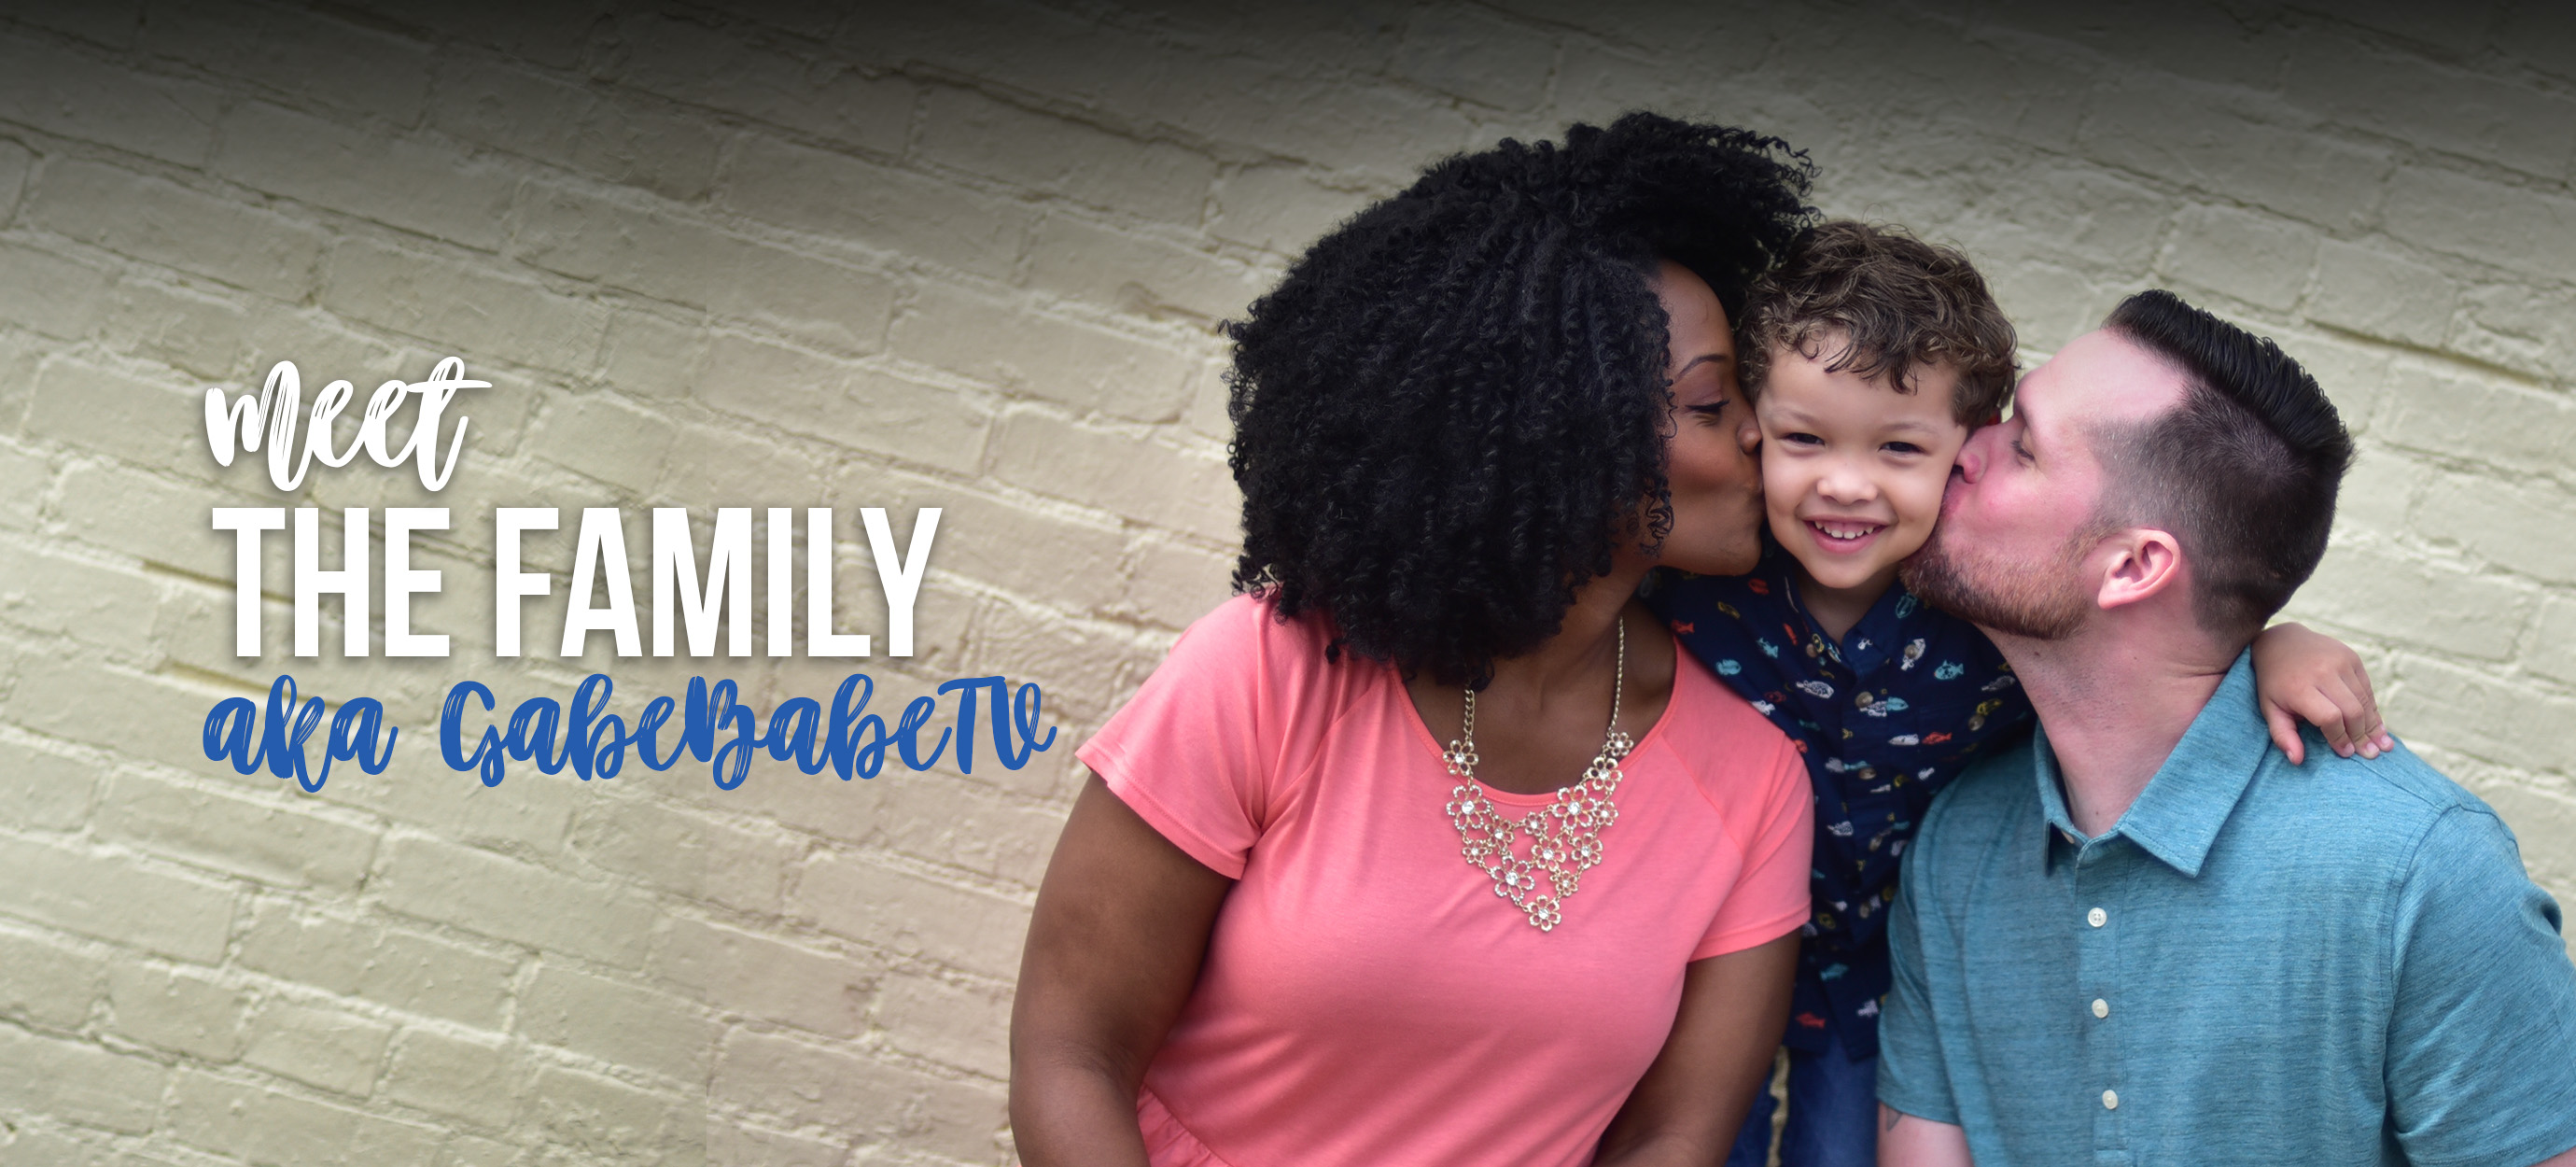 GabeBabeTV are a family committed to being top youtube vloggers.